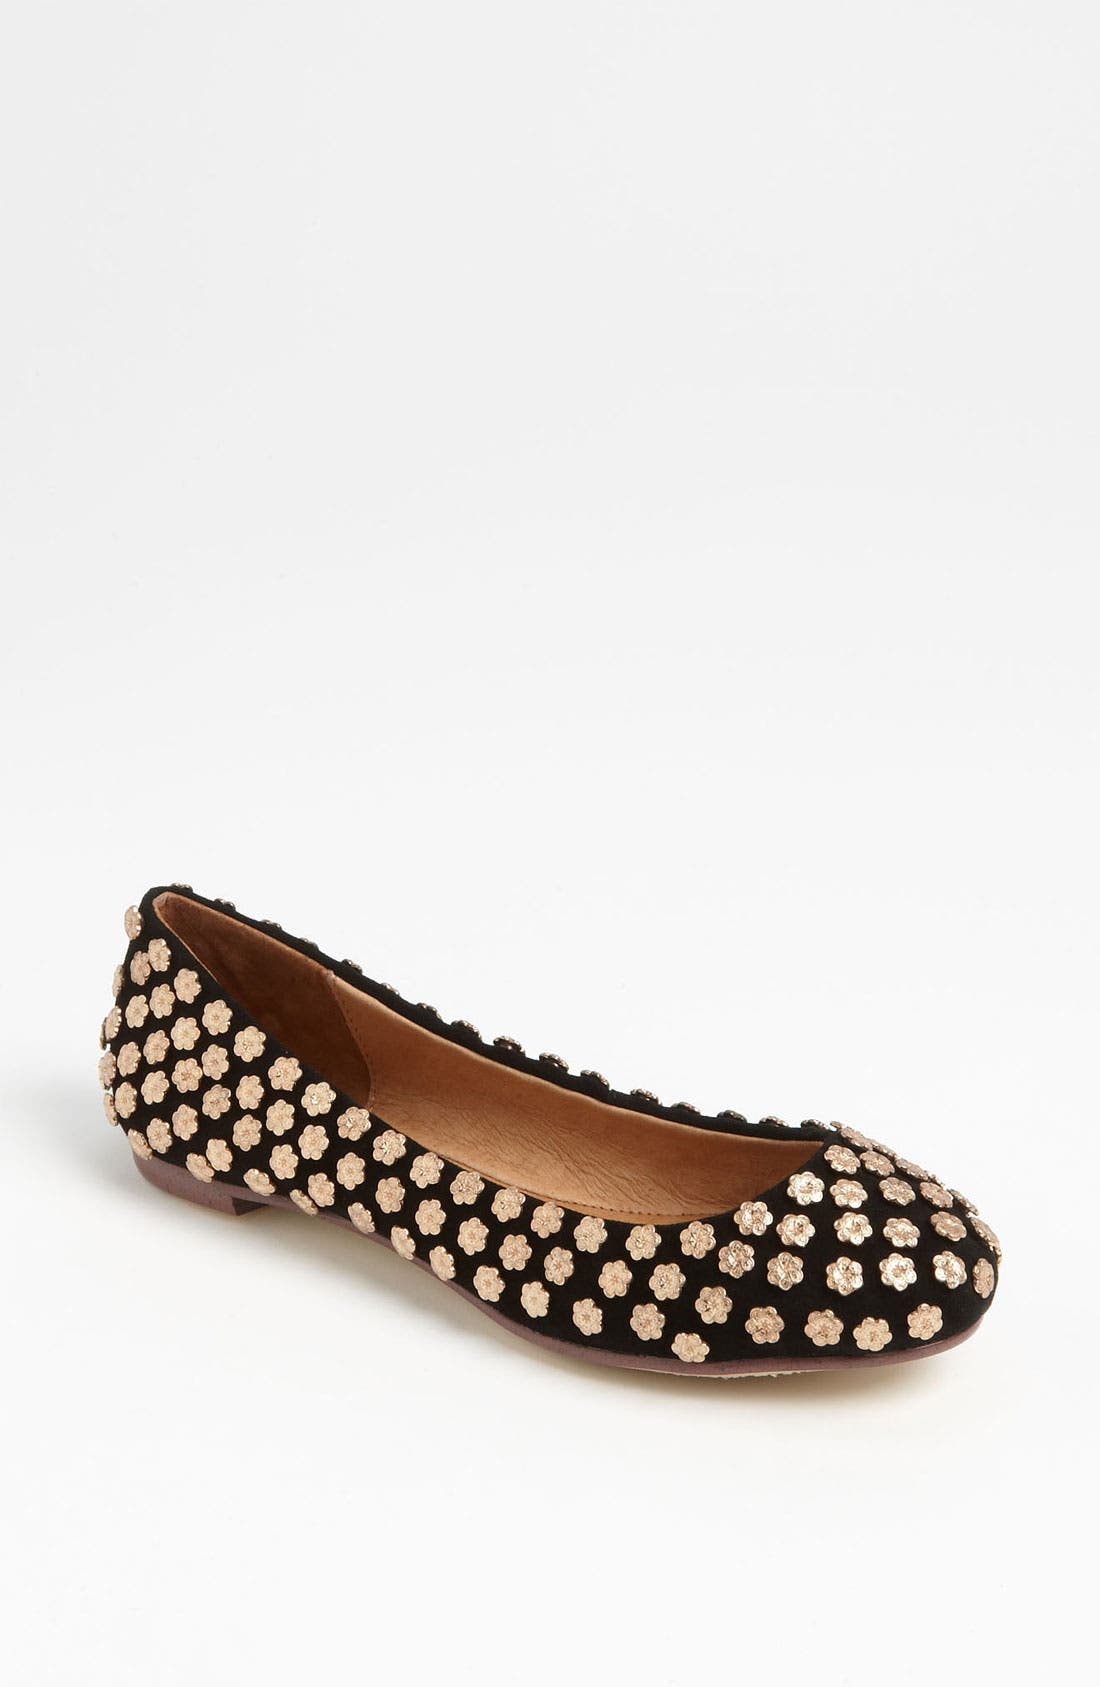 Alternate Image 1 Selected - Jeffrey Campbell 'Daisy Age' Flat